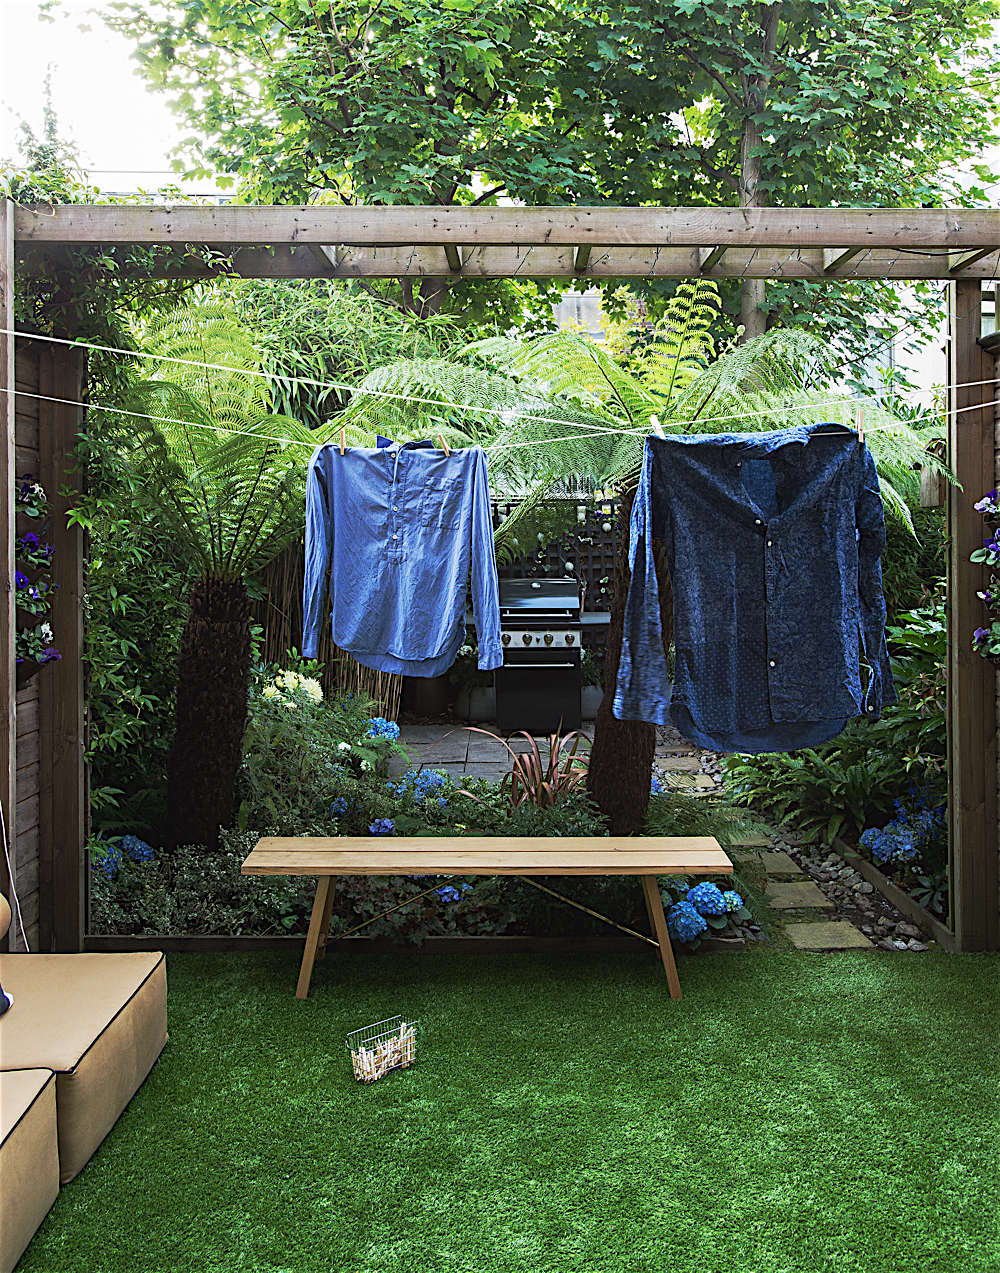 Christine Chang Hanway, London garden, Garden as exterior room, two blue shirts hanging on clothes line which attaches to garden shed, Matthew Williams | Gardenista